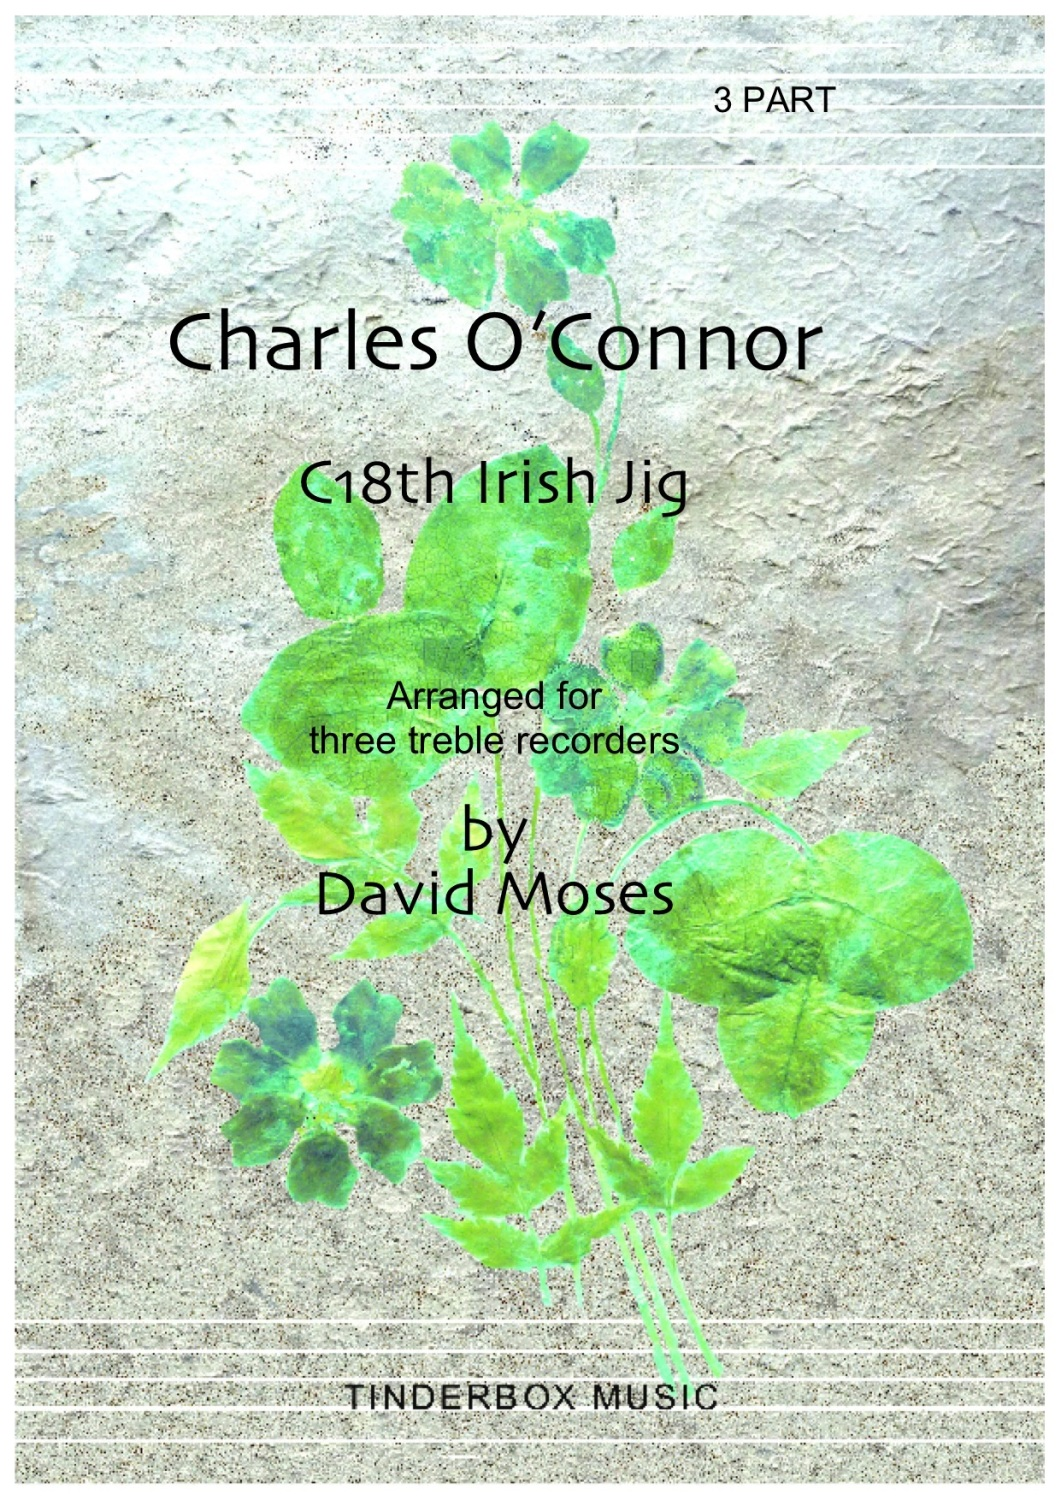 Charles O'Connor